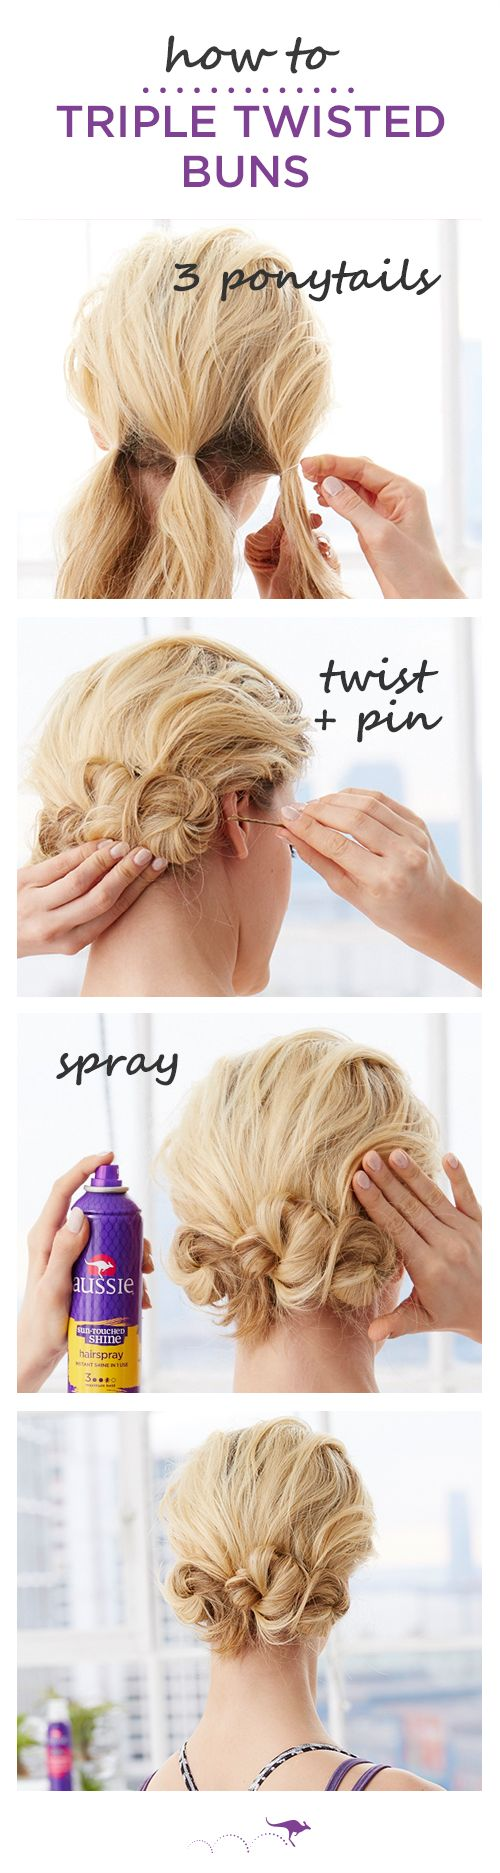 Peachy 1000 Ideas About Two Ponytails On Pinterest French Braid Short Hairstyles For Black Women Fulllsitofus